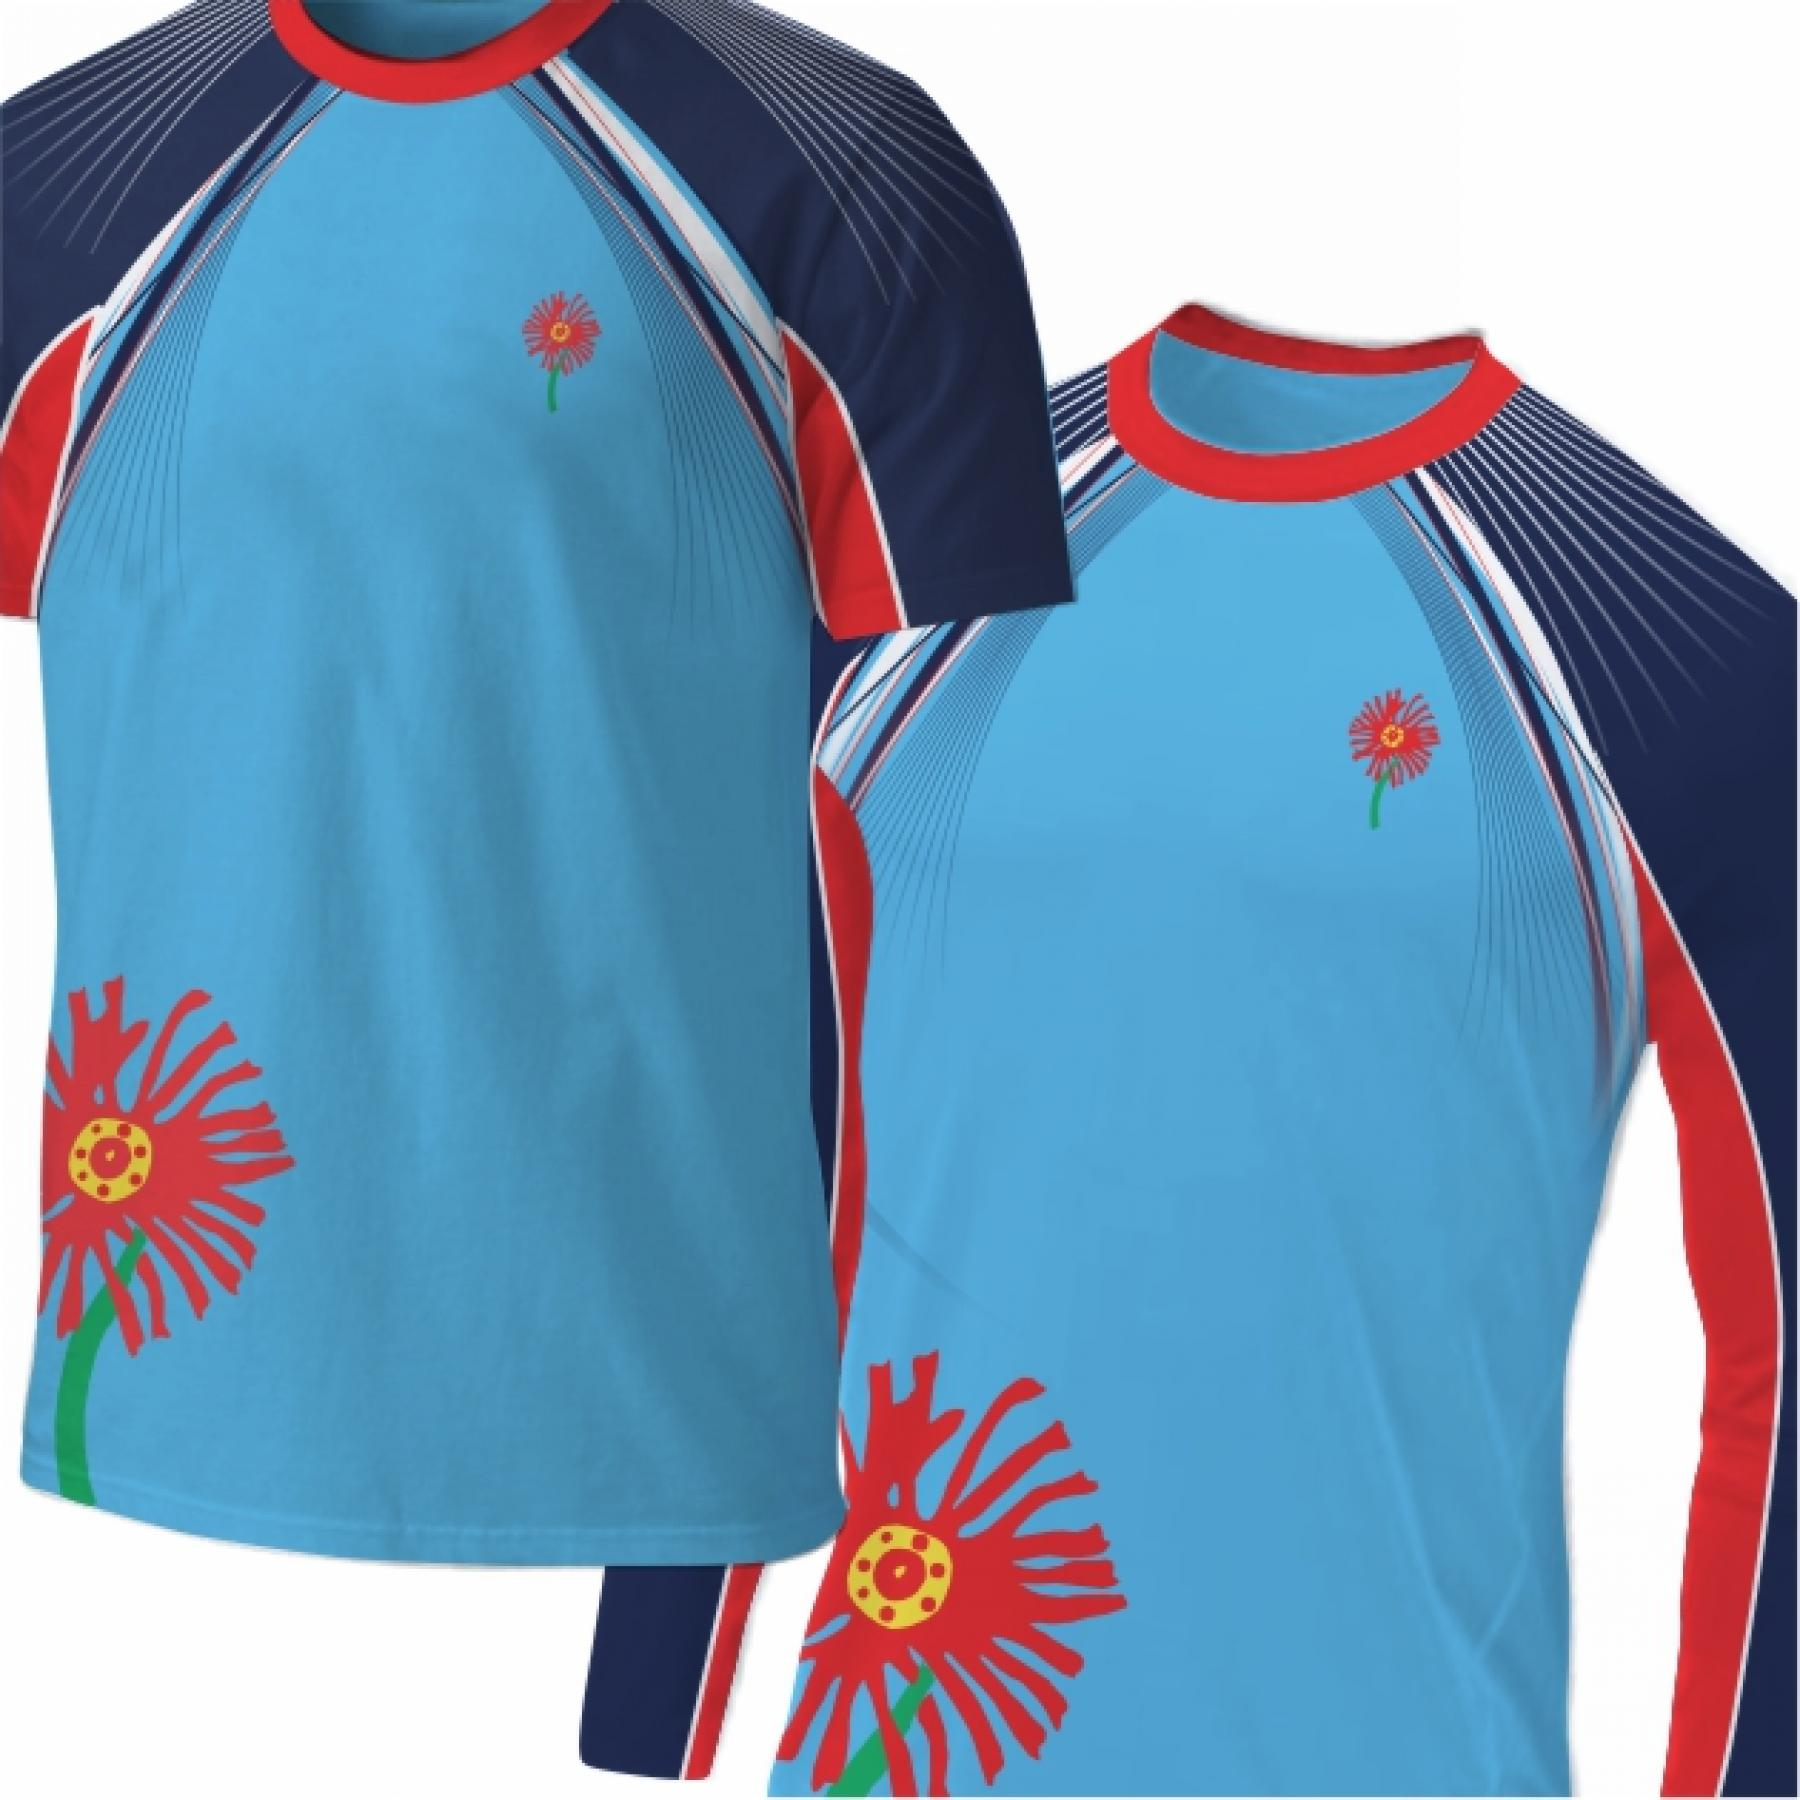 Sublimated Wear